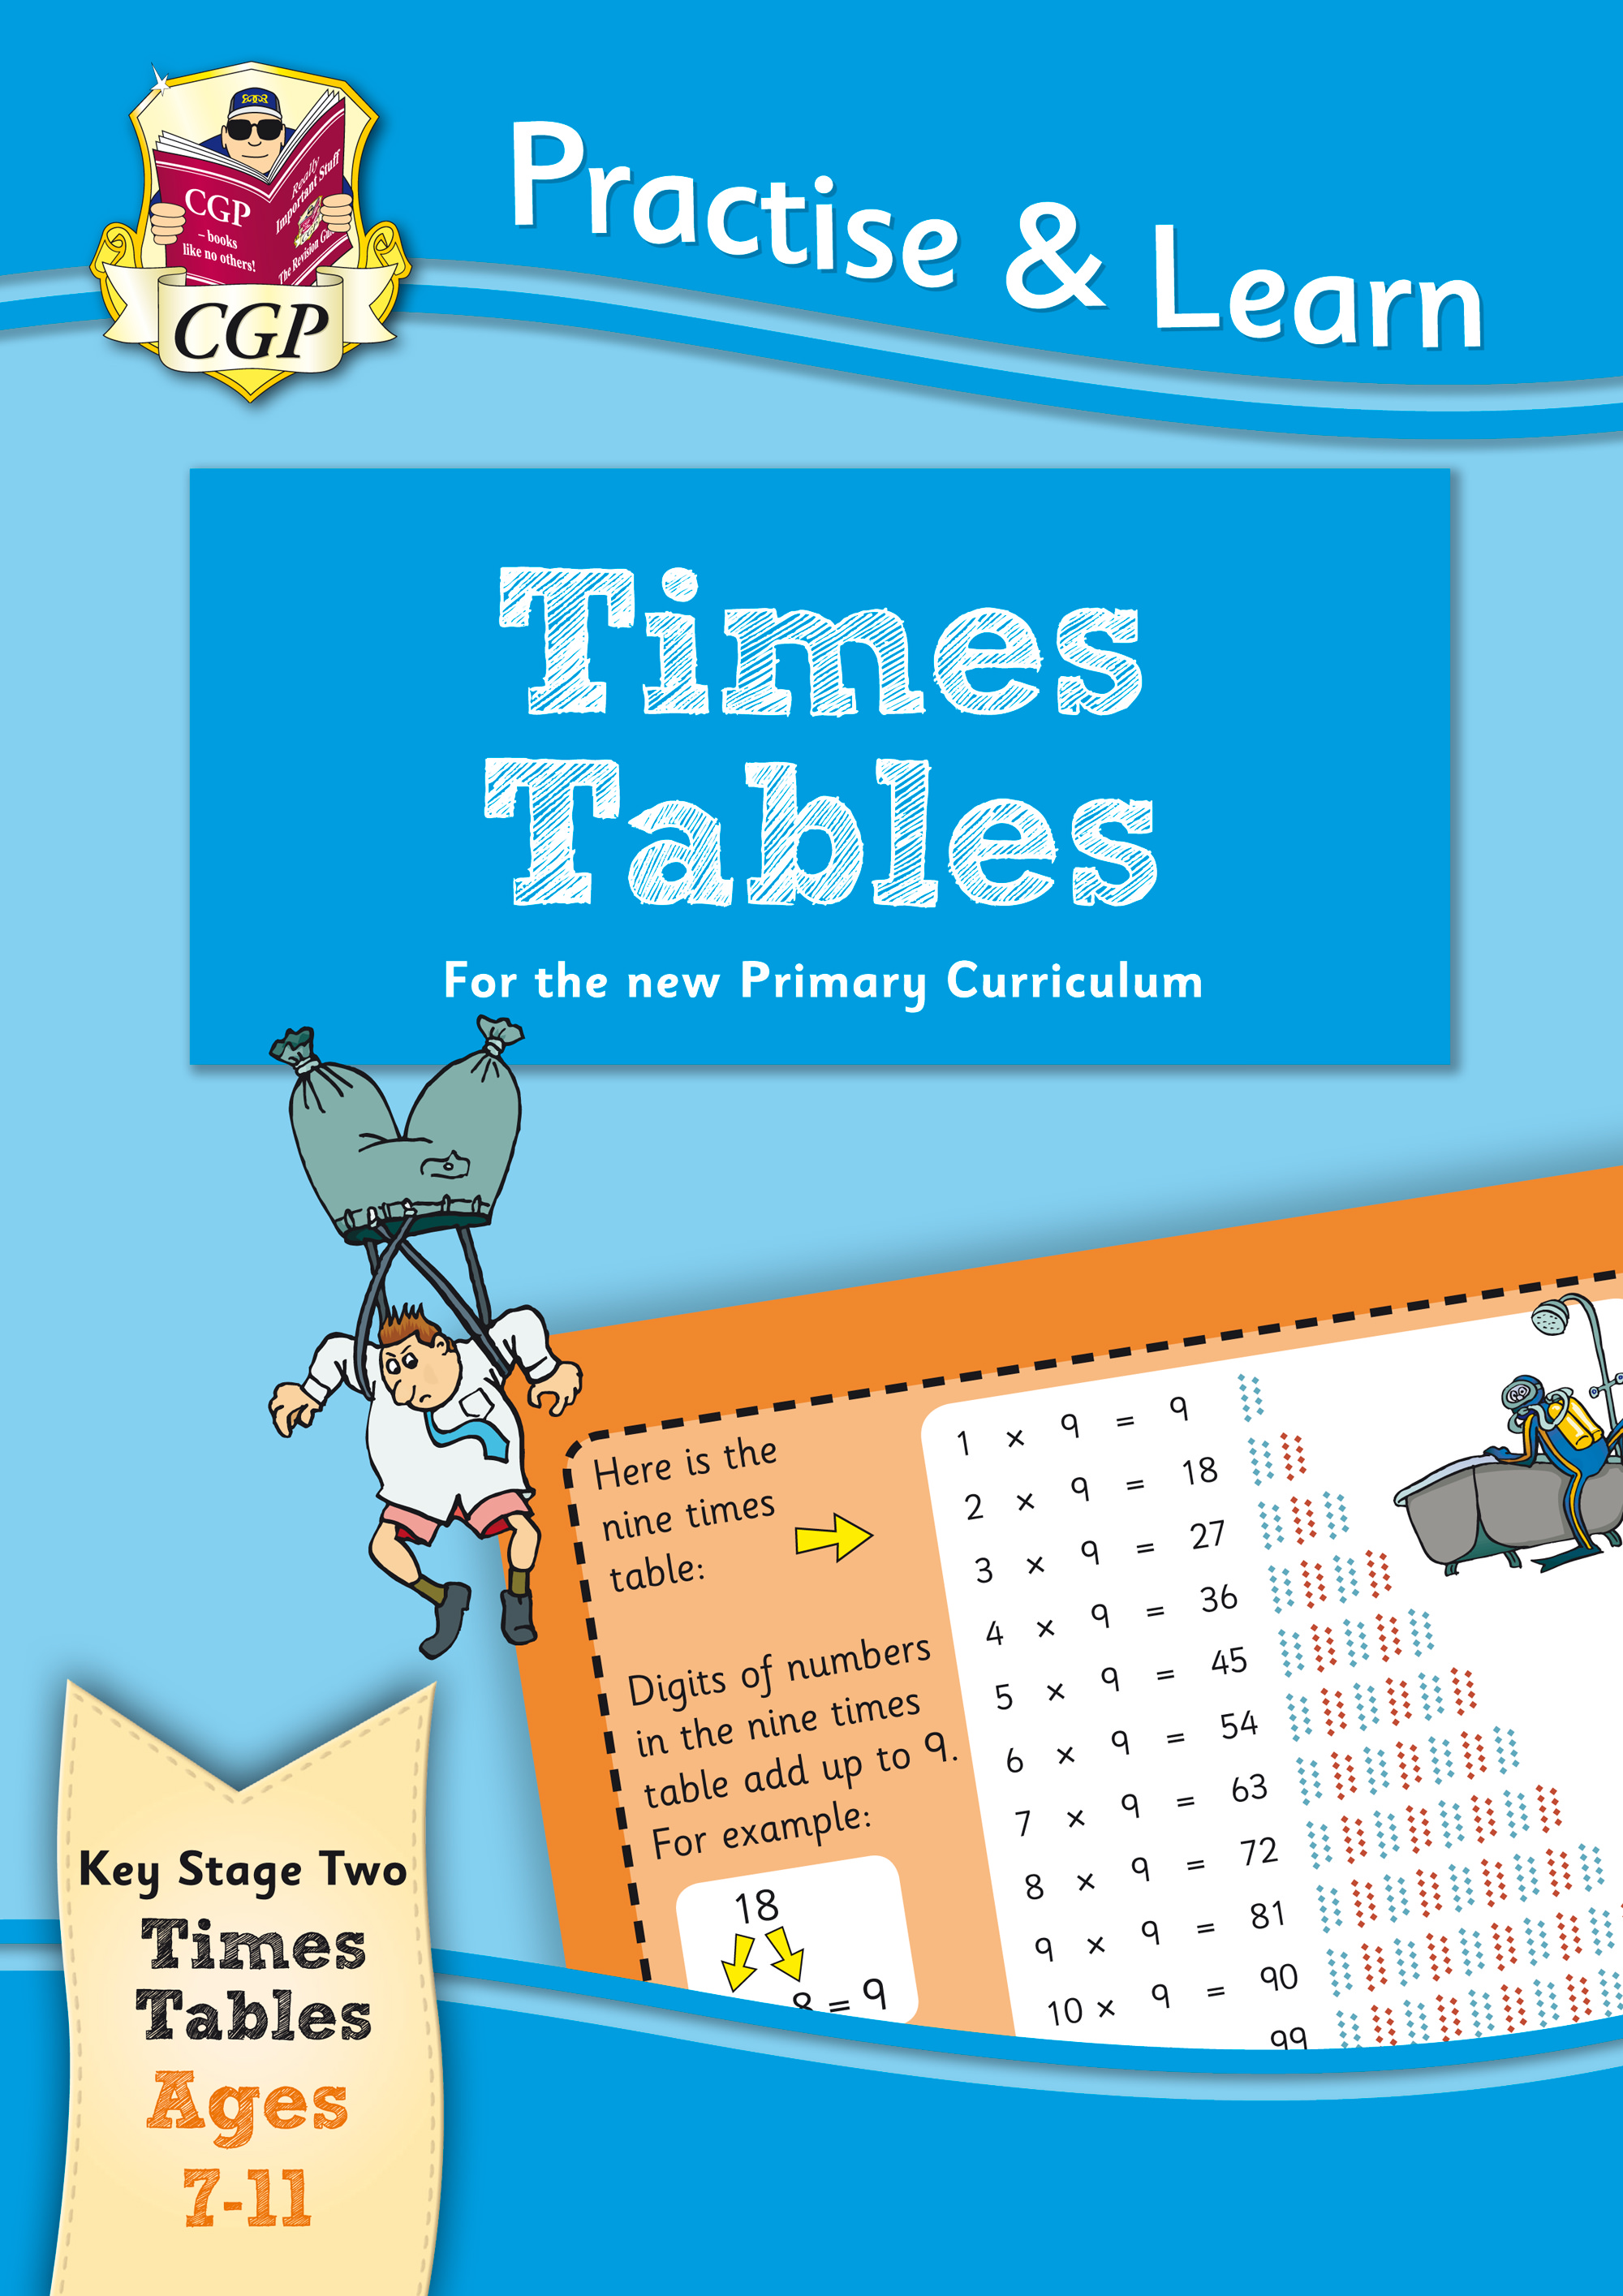 MPTT22 - New Curriculum Practise & Learn: Times Tables for Ages 7-11